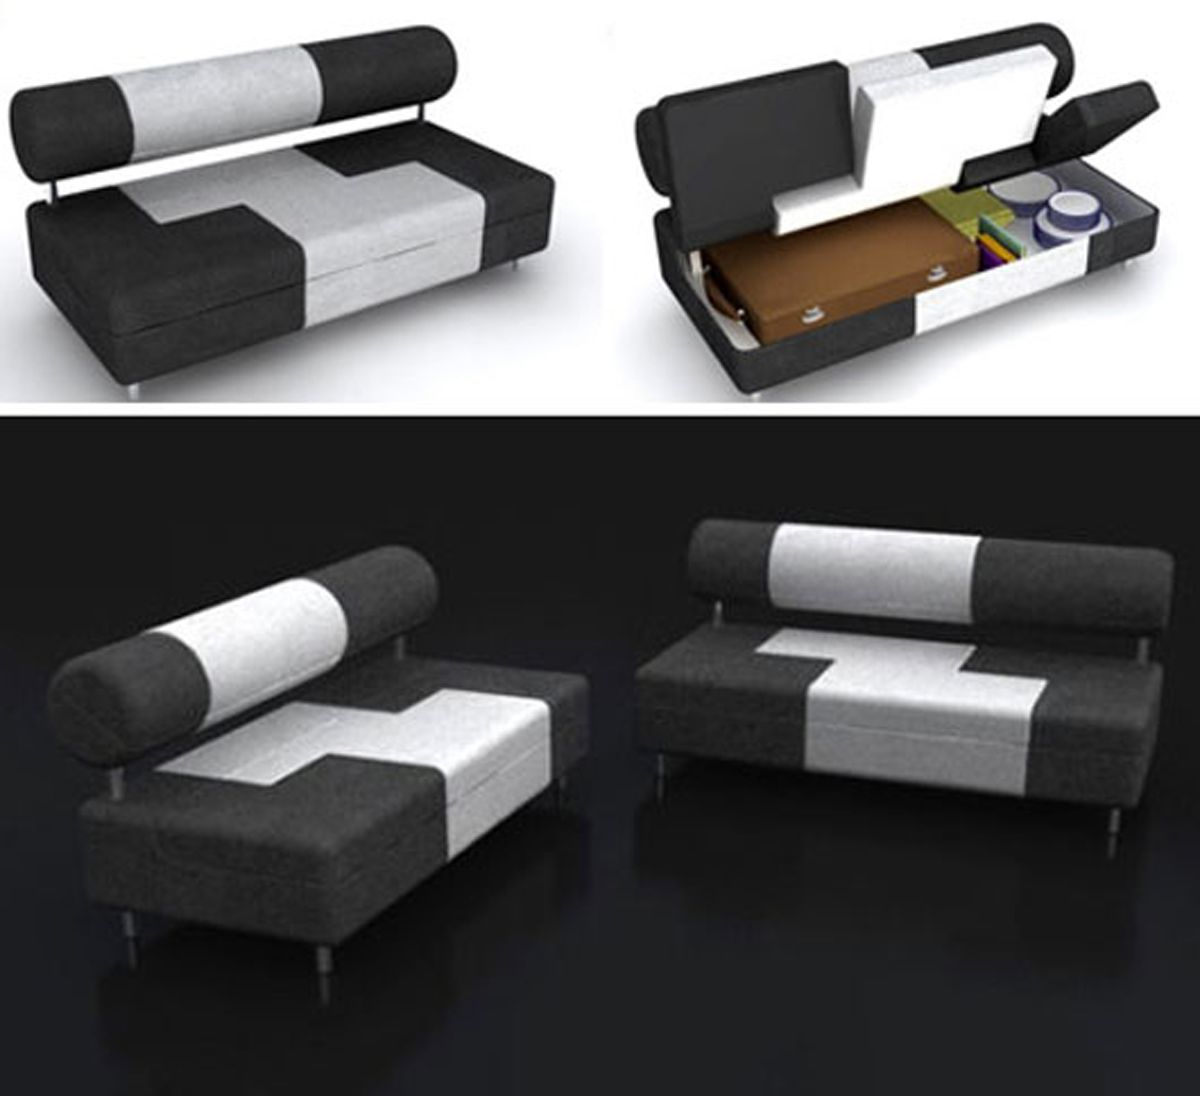 Furniture Compact Sofa Design Sofa With Storage Design For Small